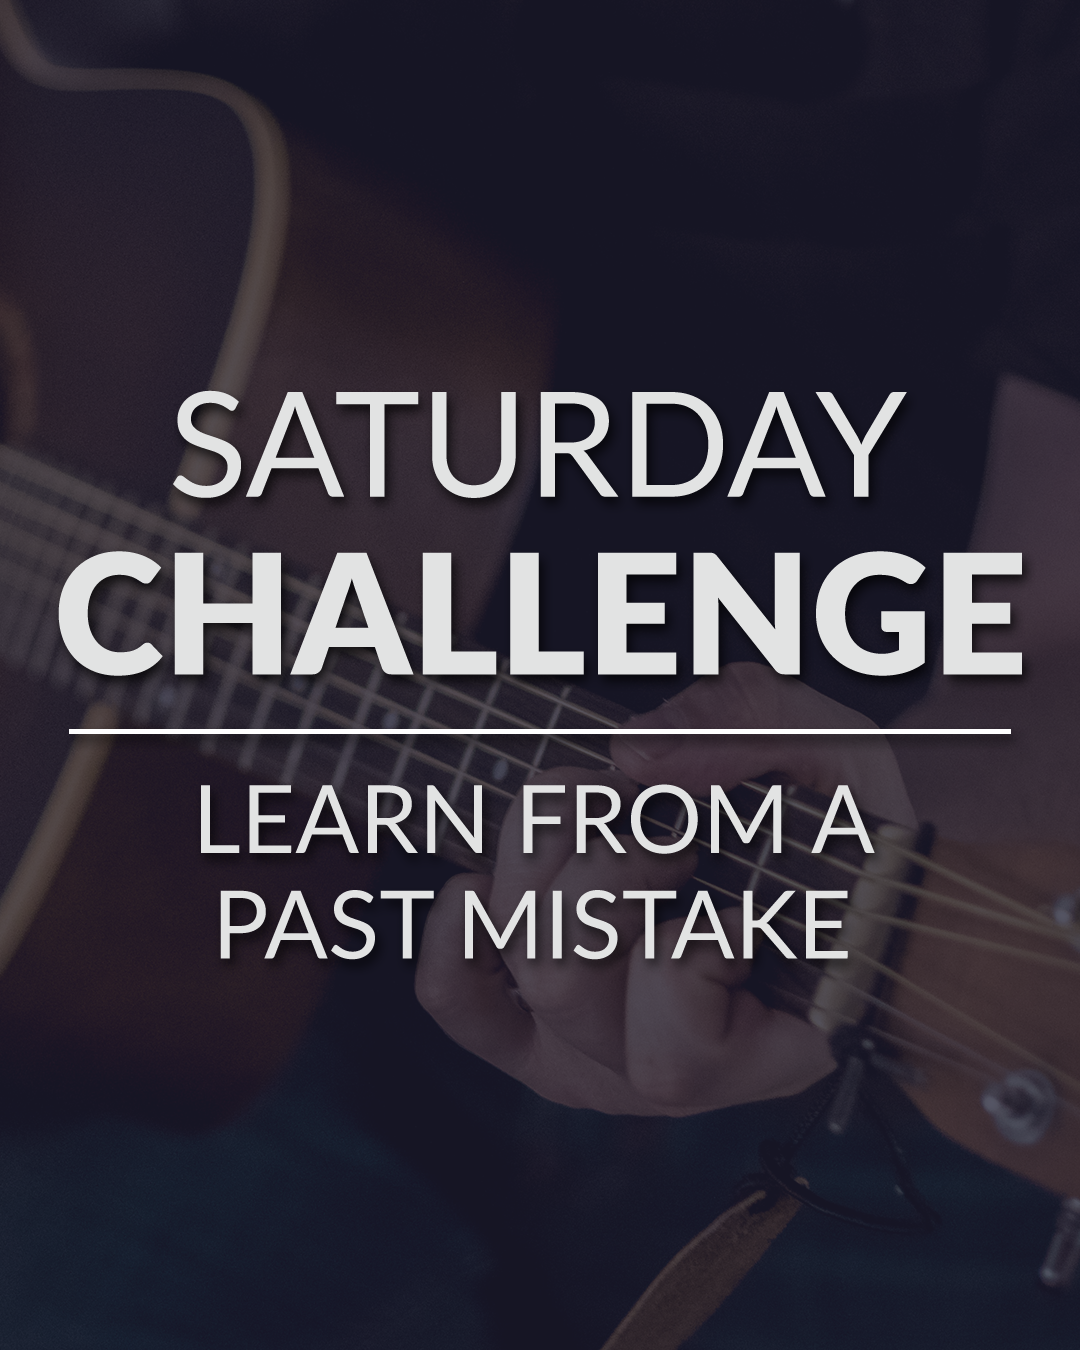 Saturday Challenge - Learn From A Past Mistake